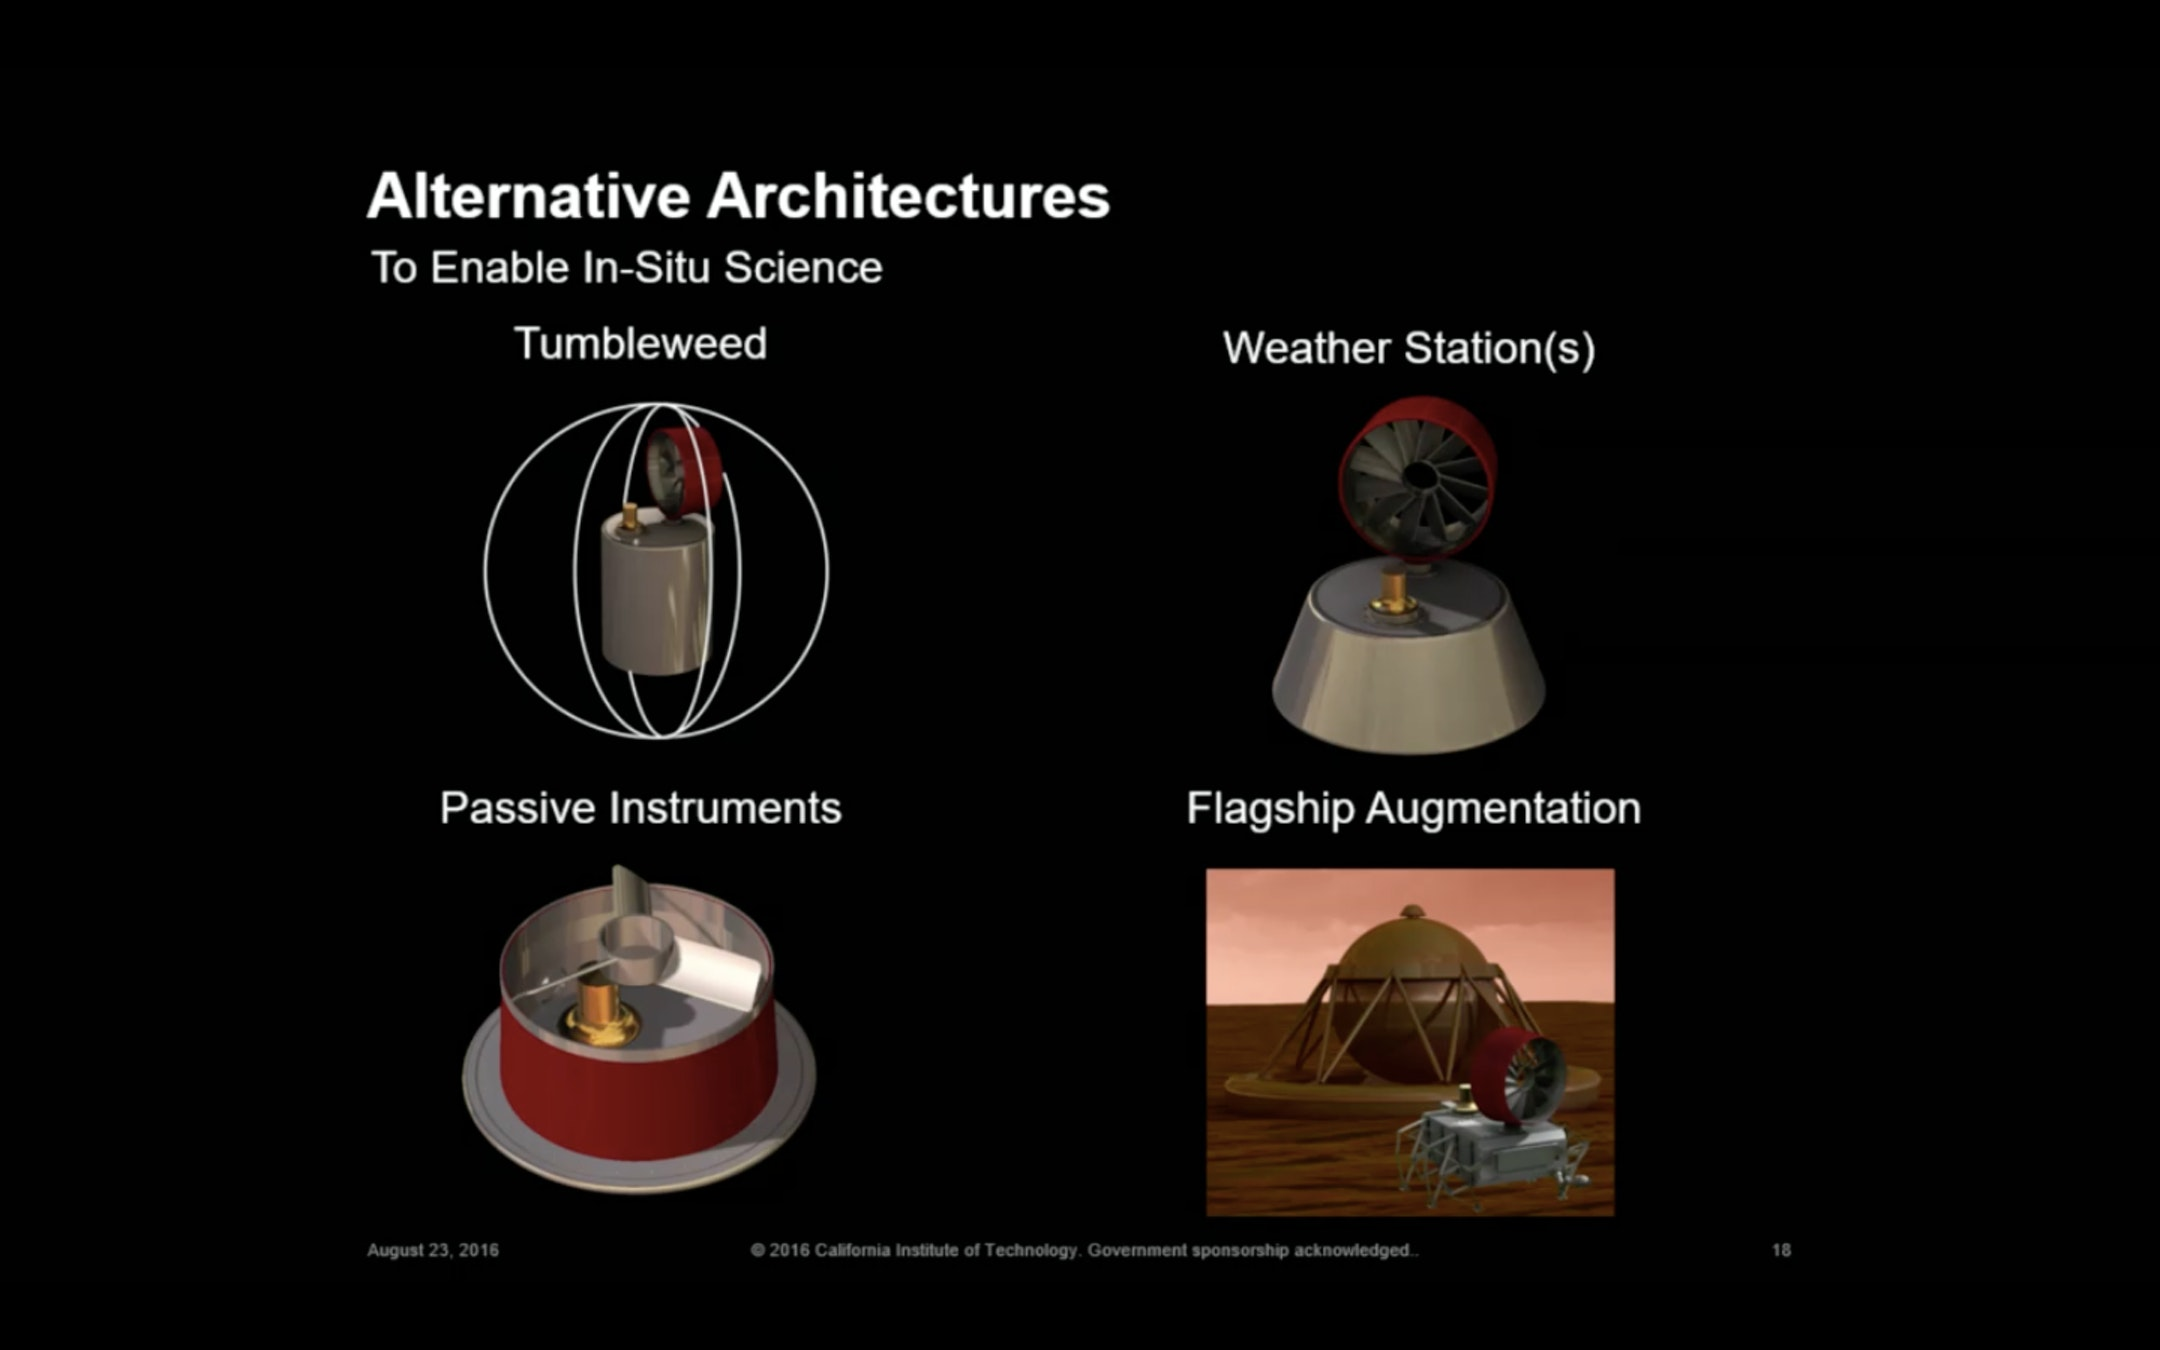 Sauder's ideas for alternative architectures